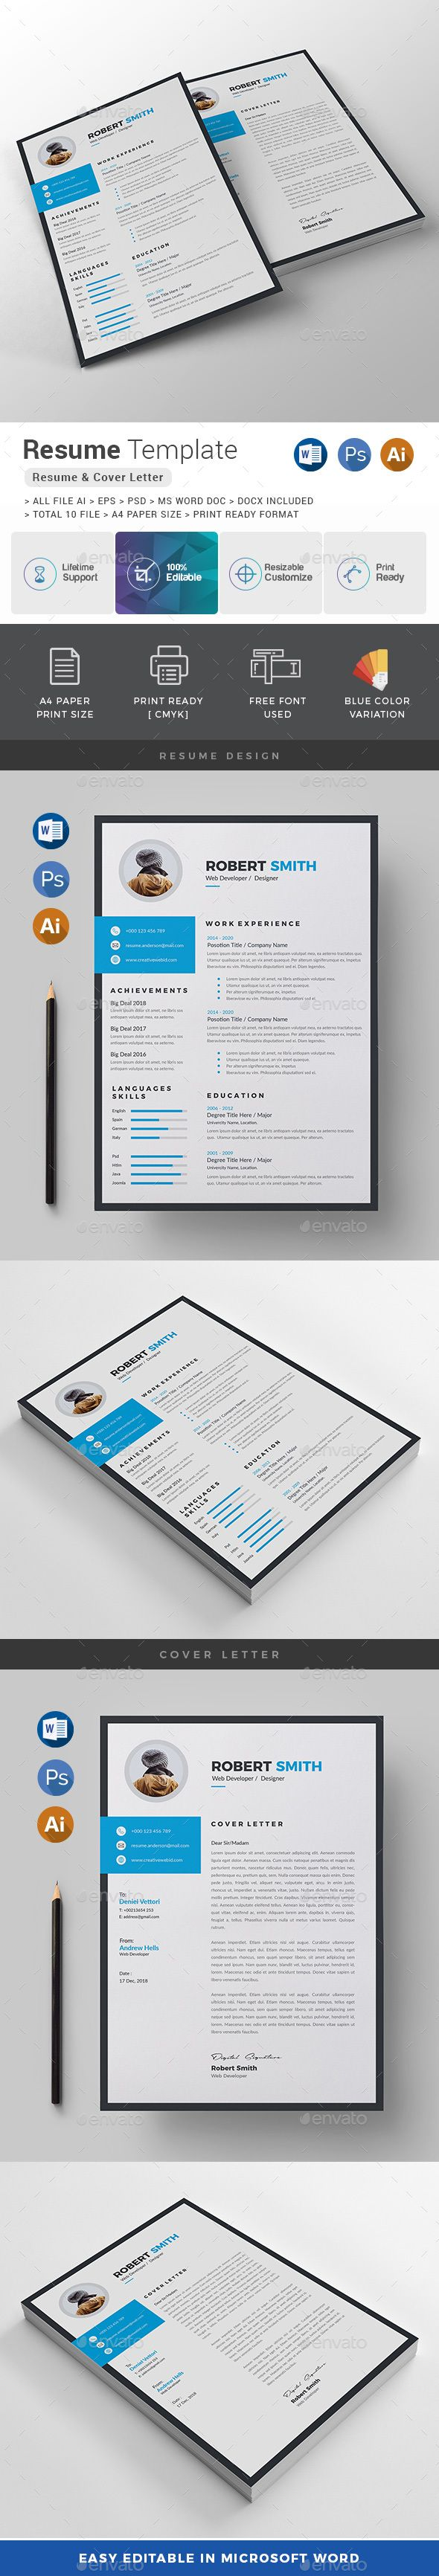 Resume Text Size Features Of Resume Template Color Versions A4 Paper Size With Bleeds .